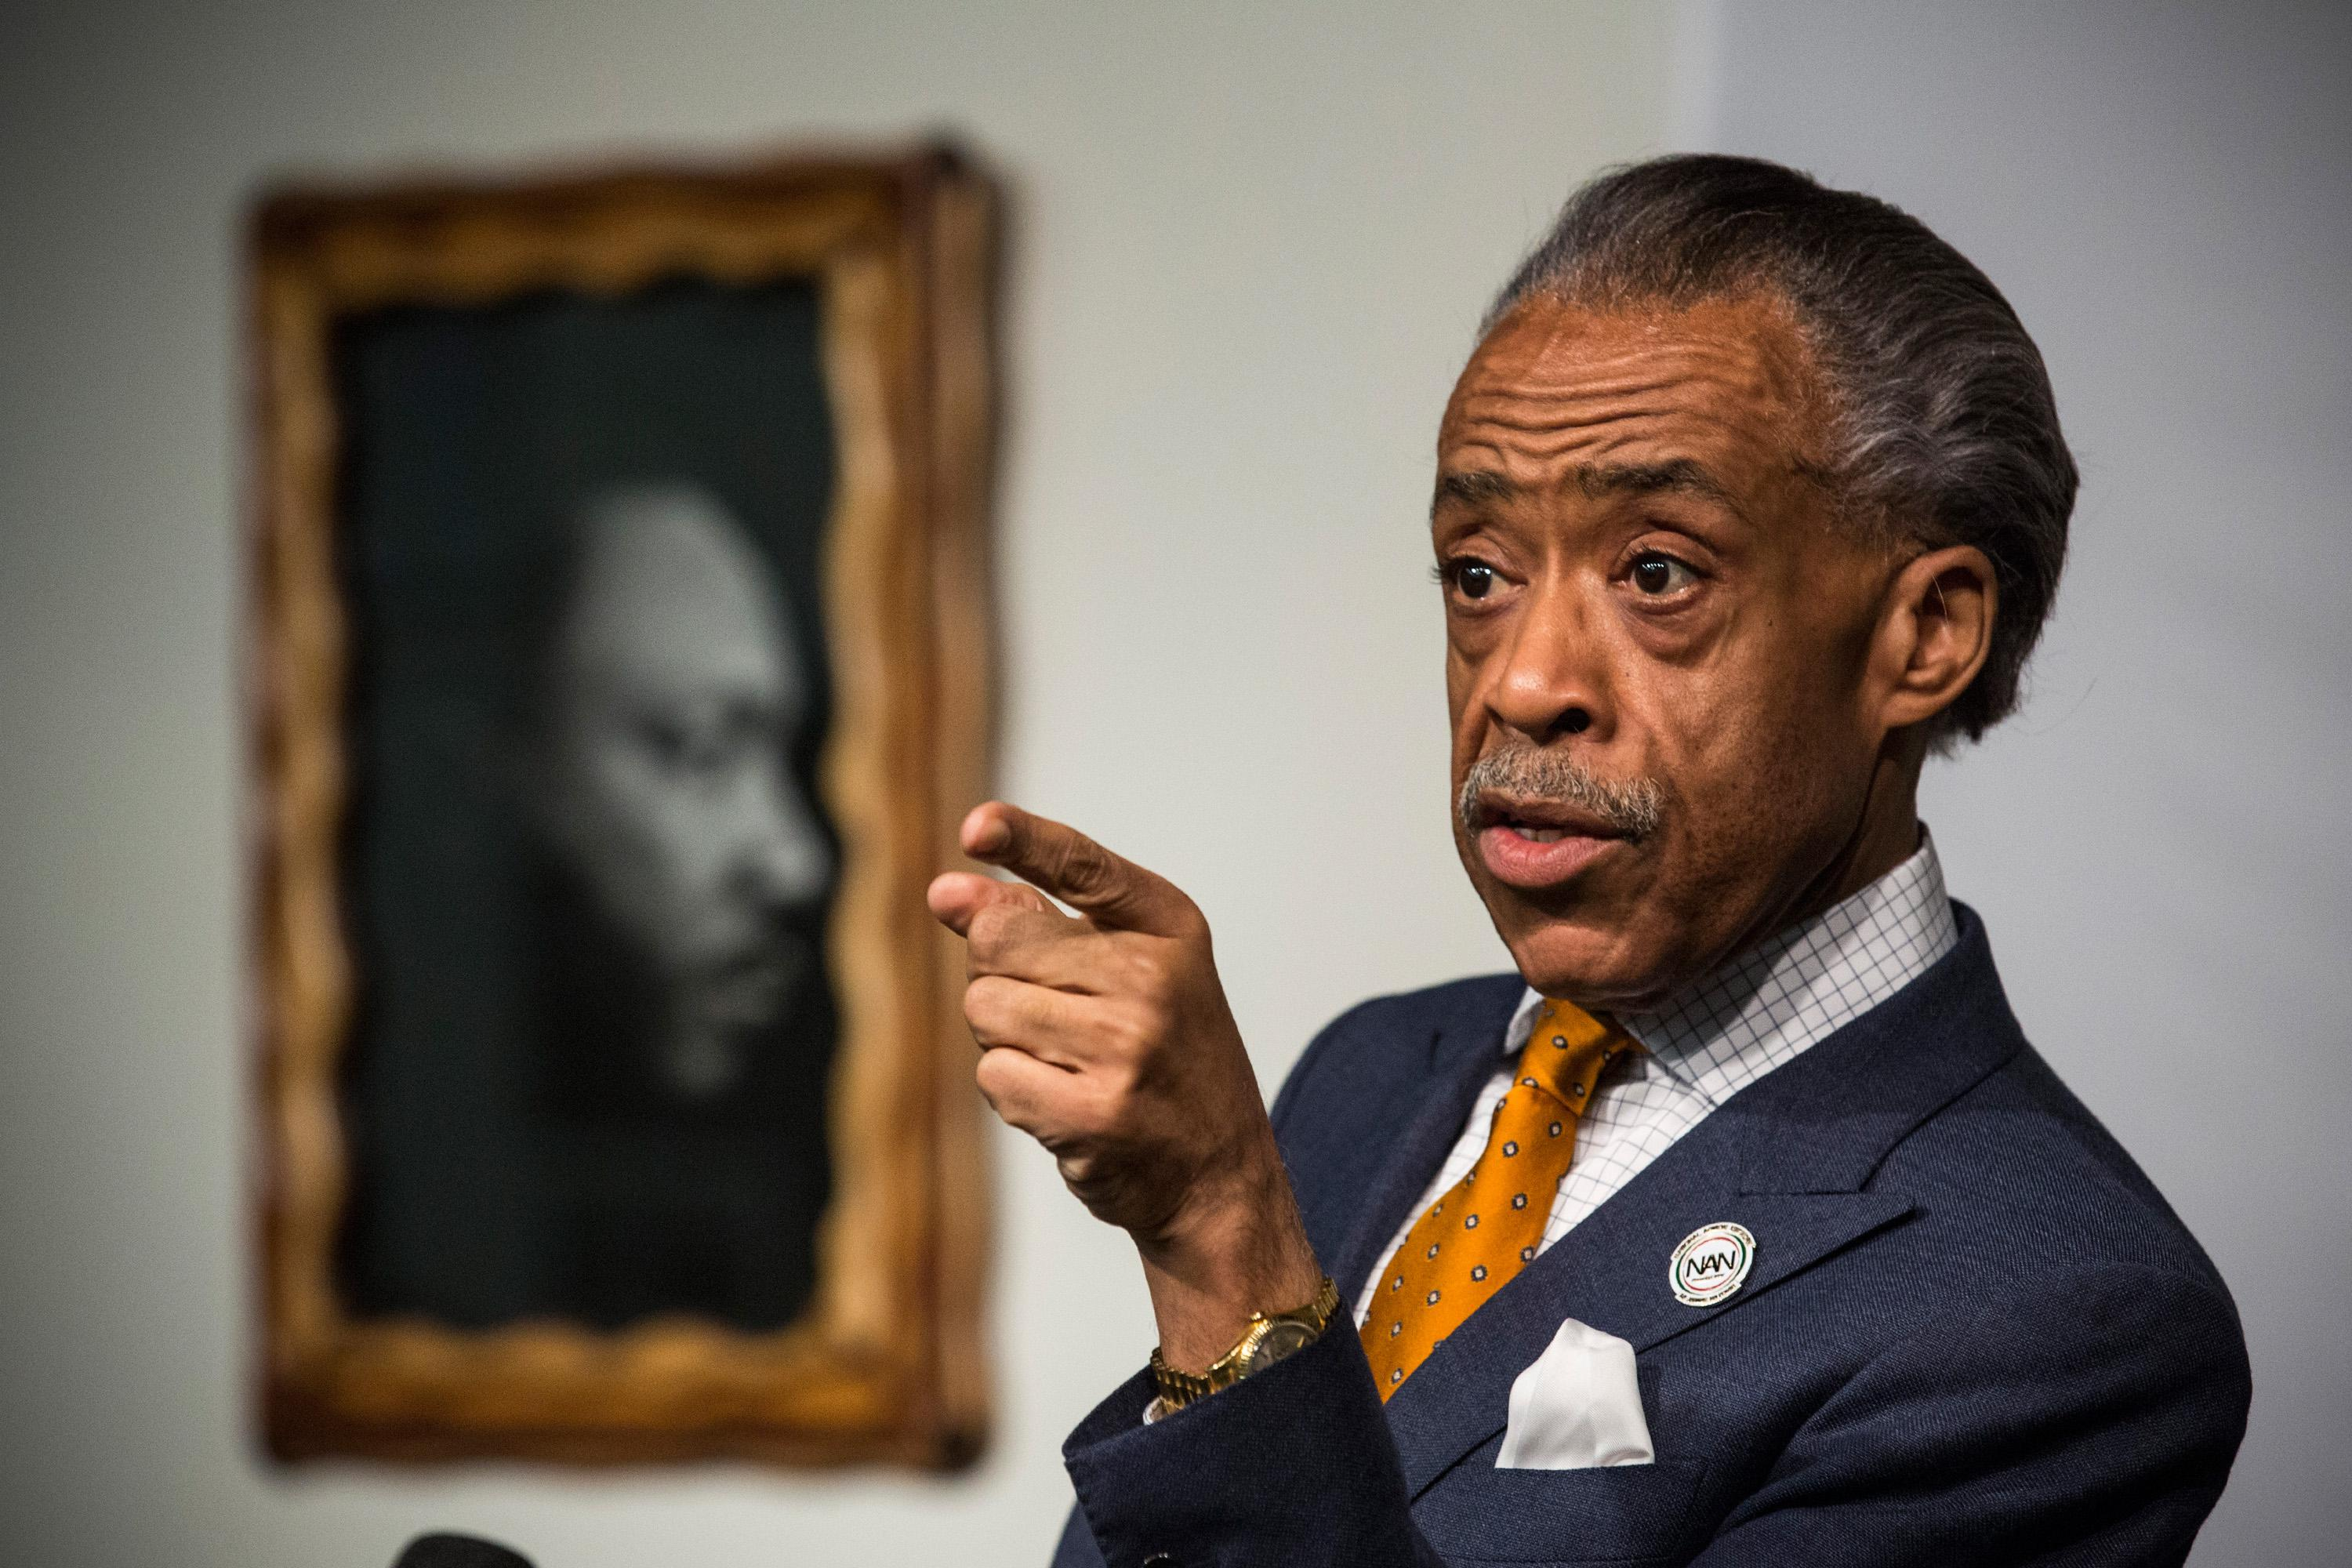 Rev. Al Sharpton Holds News Conference At National Action Network's Office